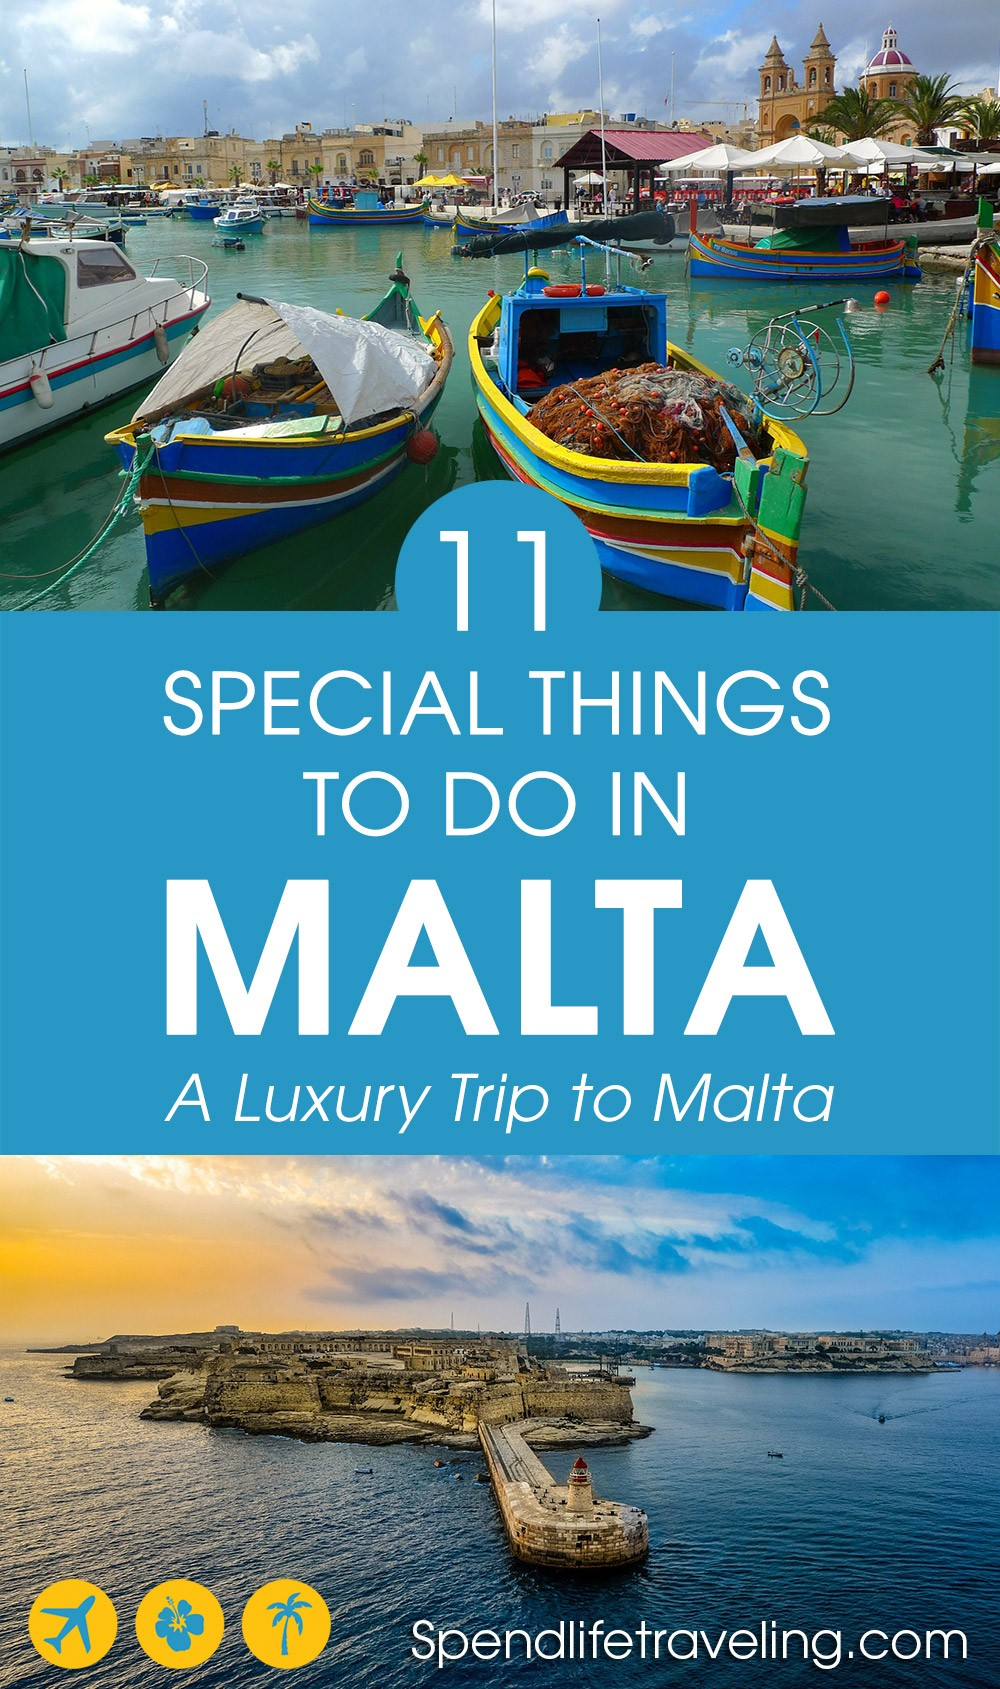 Looking for a more luxurious trip to #Malta? Or would you like to do something unique on your next visit to Malta? Check out these 11 special things to do. #traveltips #luxurytravel #luxurytrip #travelmediterranean